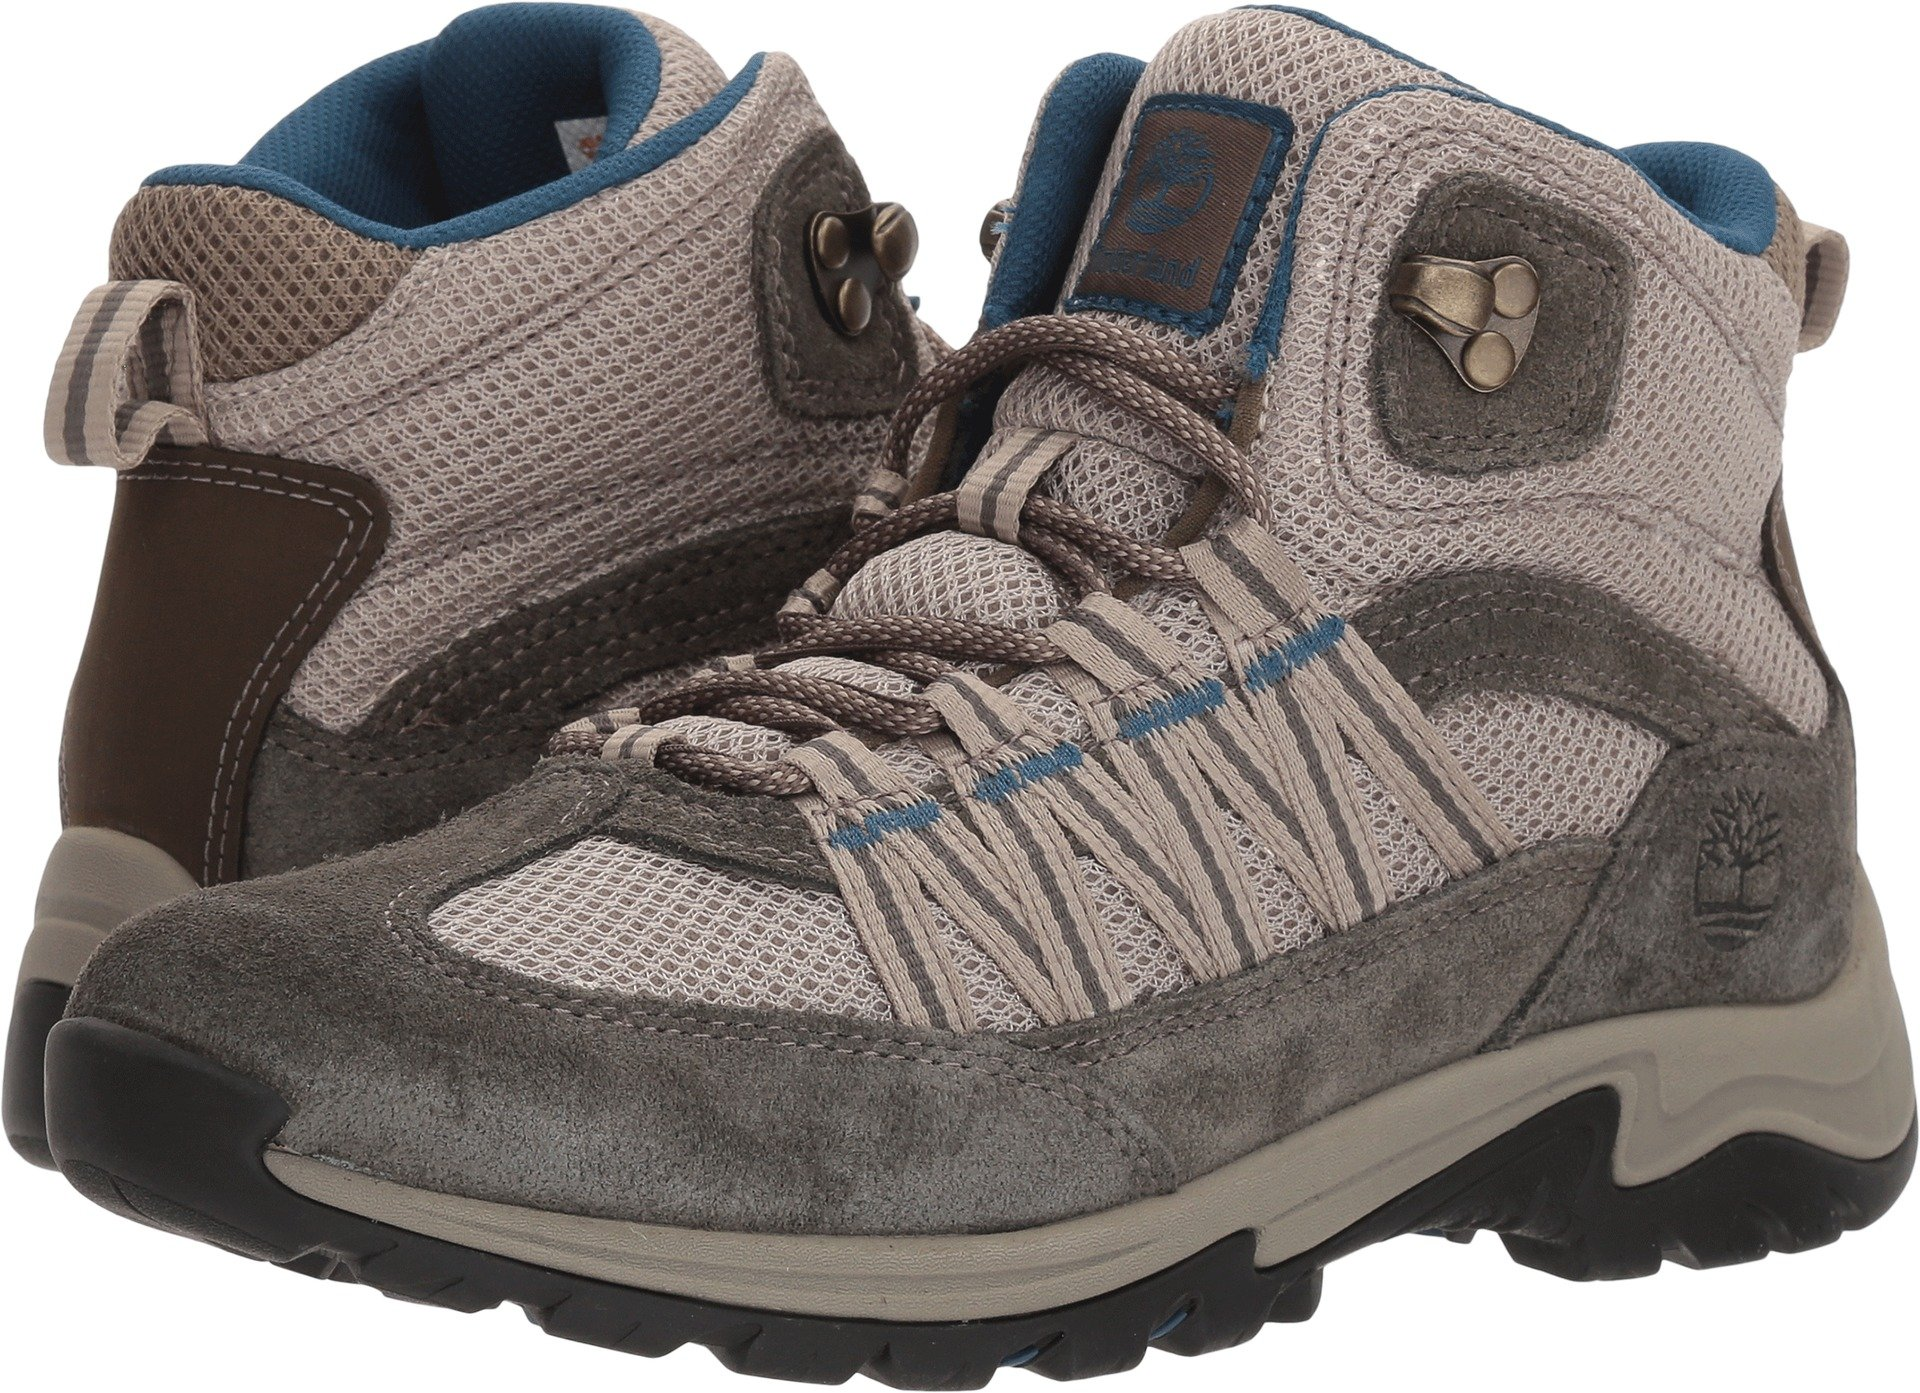 Timberland A1NOV Women's Mt. Maddsen Lite Mid Hiking Boots, Grey Full-Grain - 7.5 M